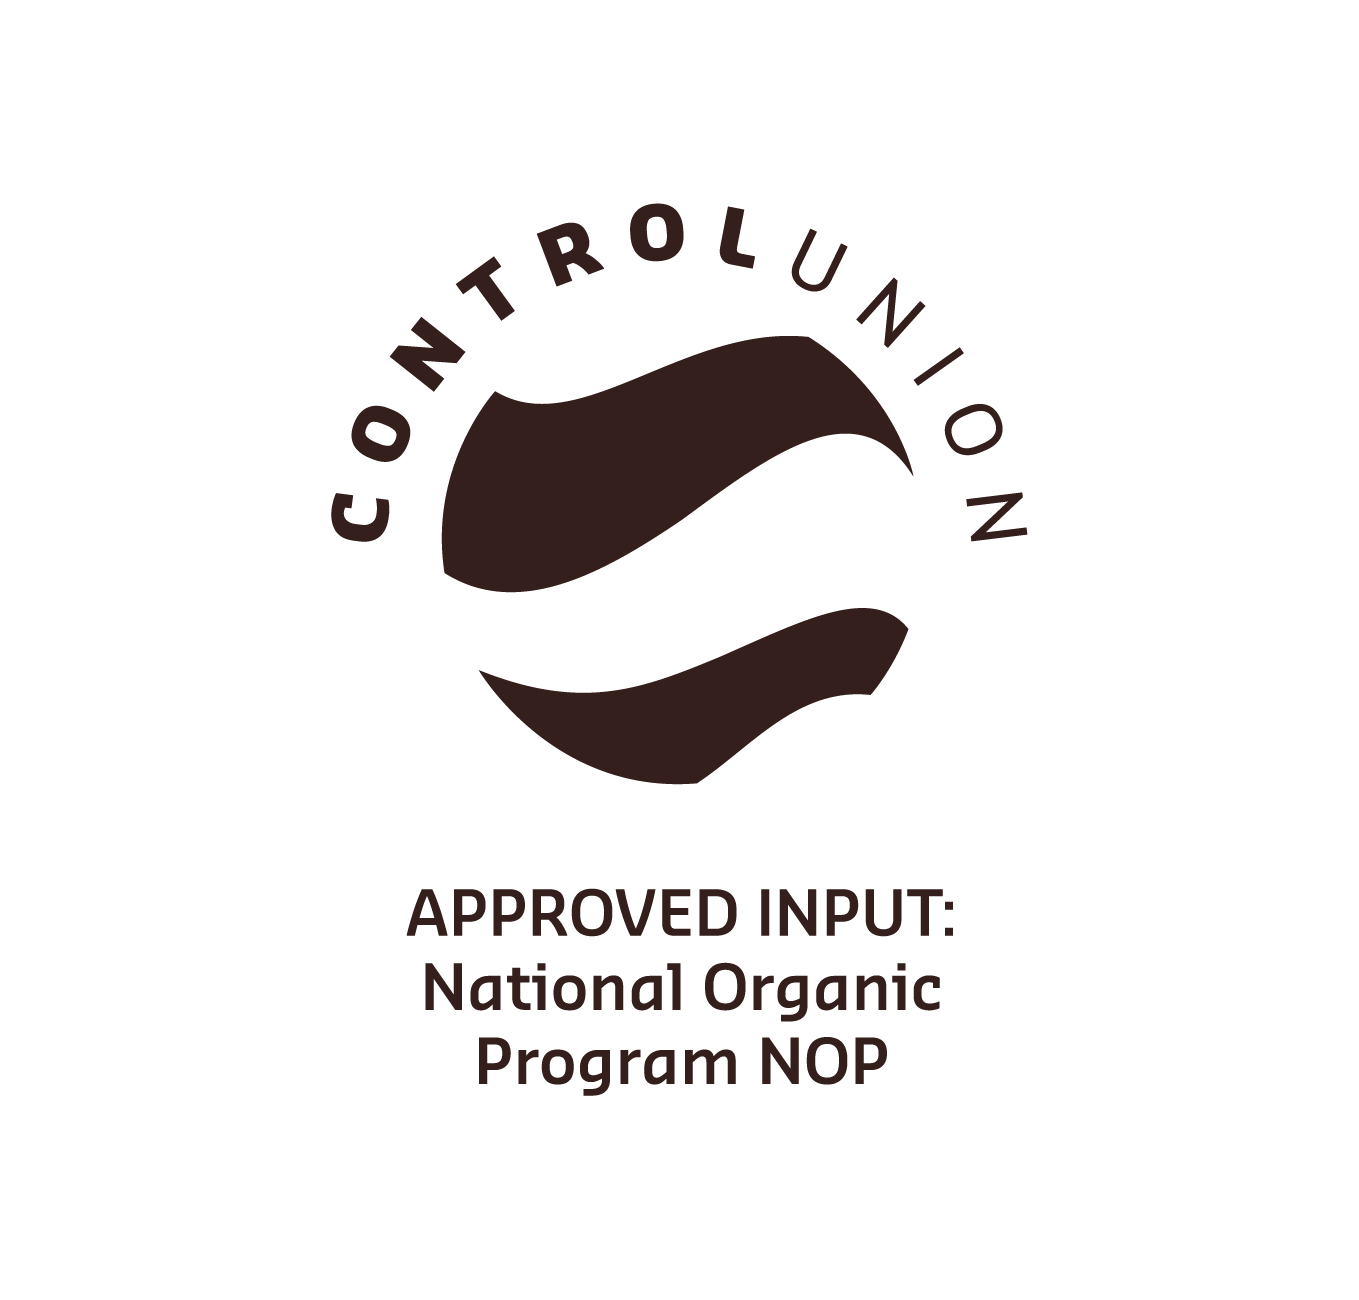 Control Union Certifications: National Organic Program (NOP) Input